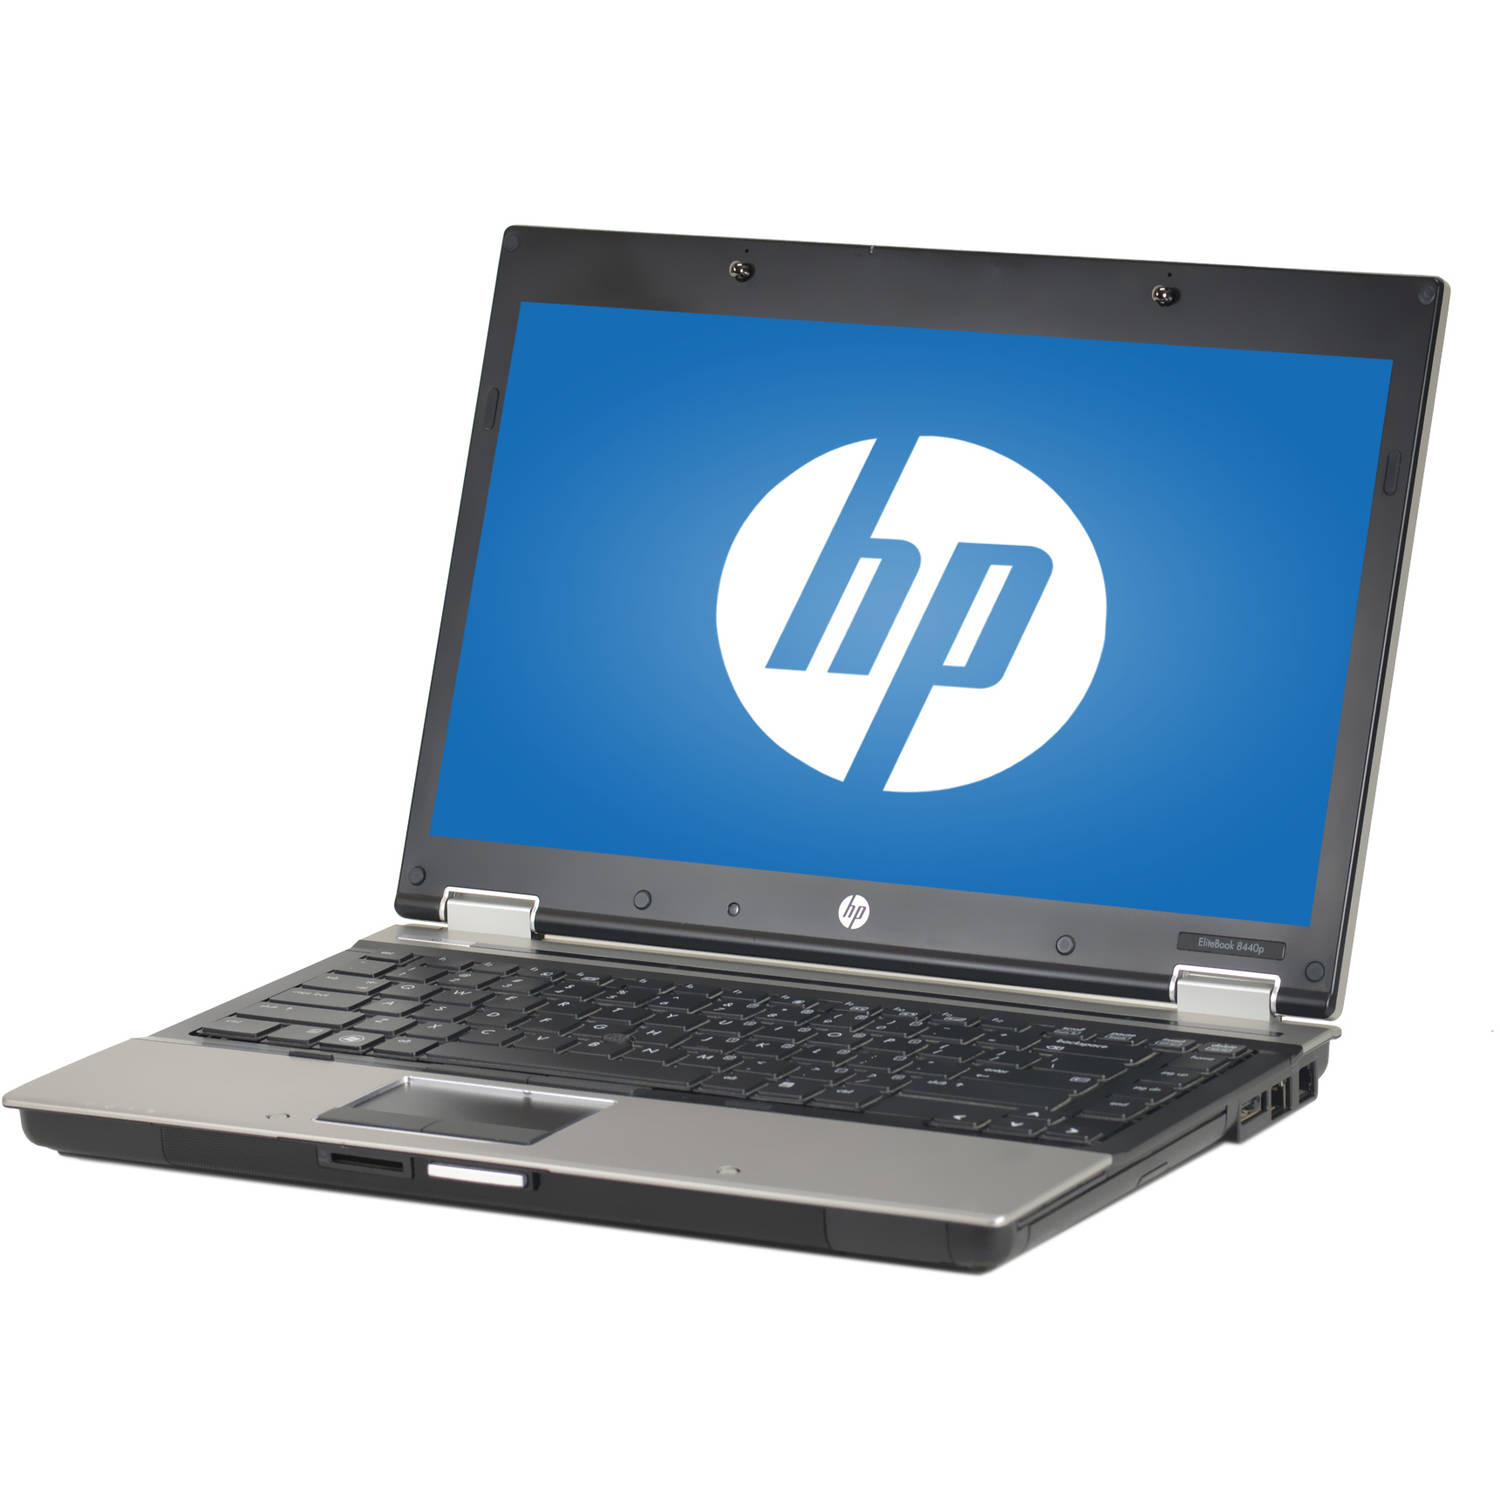 "Refurbished HP Silver 14.1"" EliteBook 8440P Laptop PC with Intel Core i5-520M Processor, 4GB Memory, 320GB Hard Drive and Windows 10 Pro"